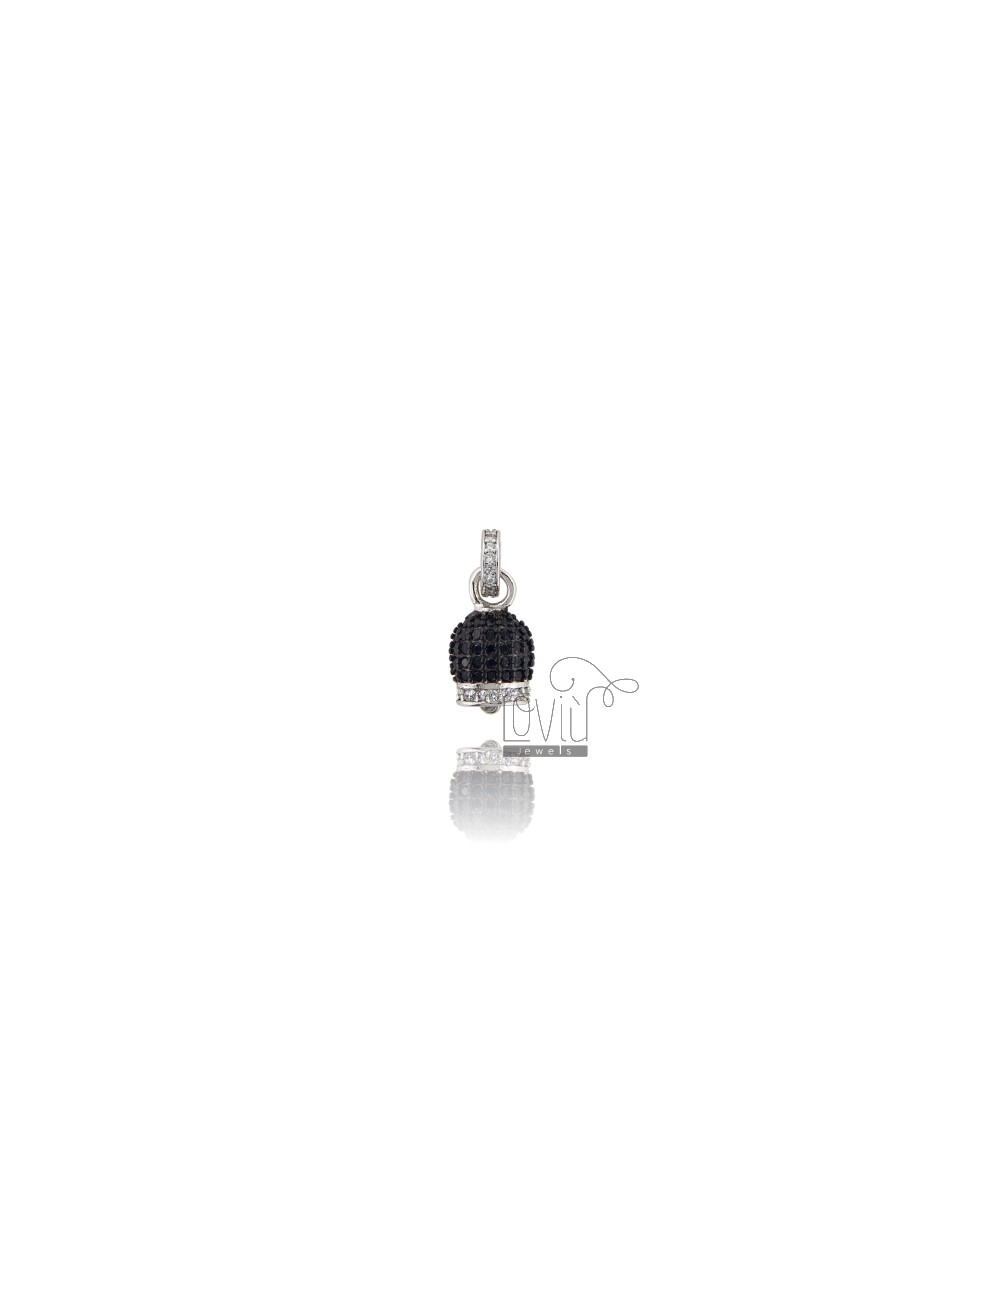 PENDANT BELL 14X8 MM SILVER RHODIUM TIT 925 AND WHITE AND BLACK ZIRCONIA